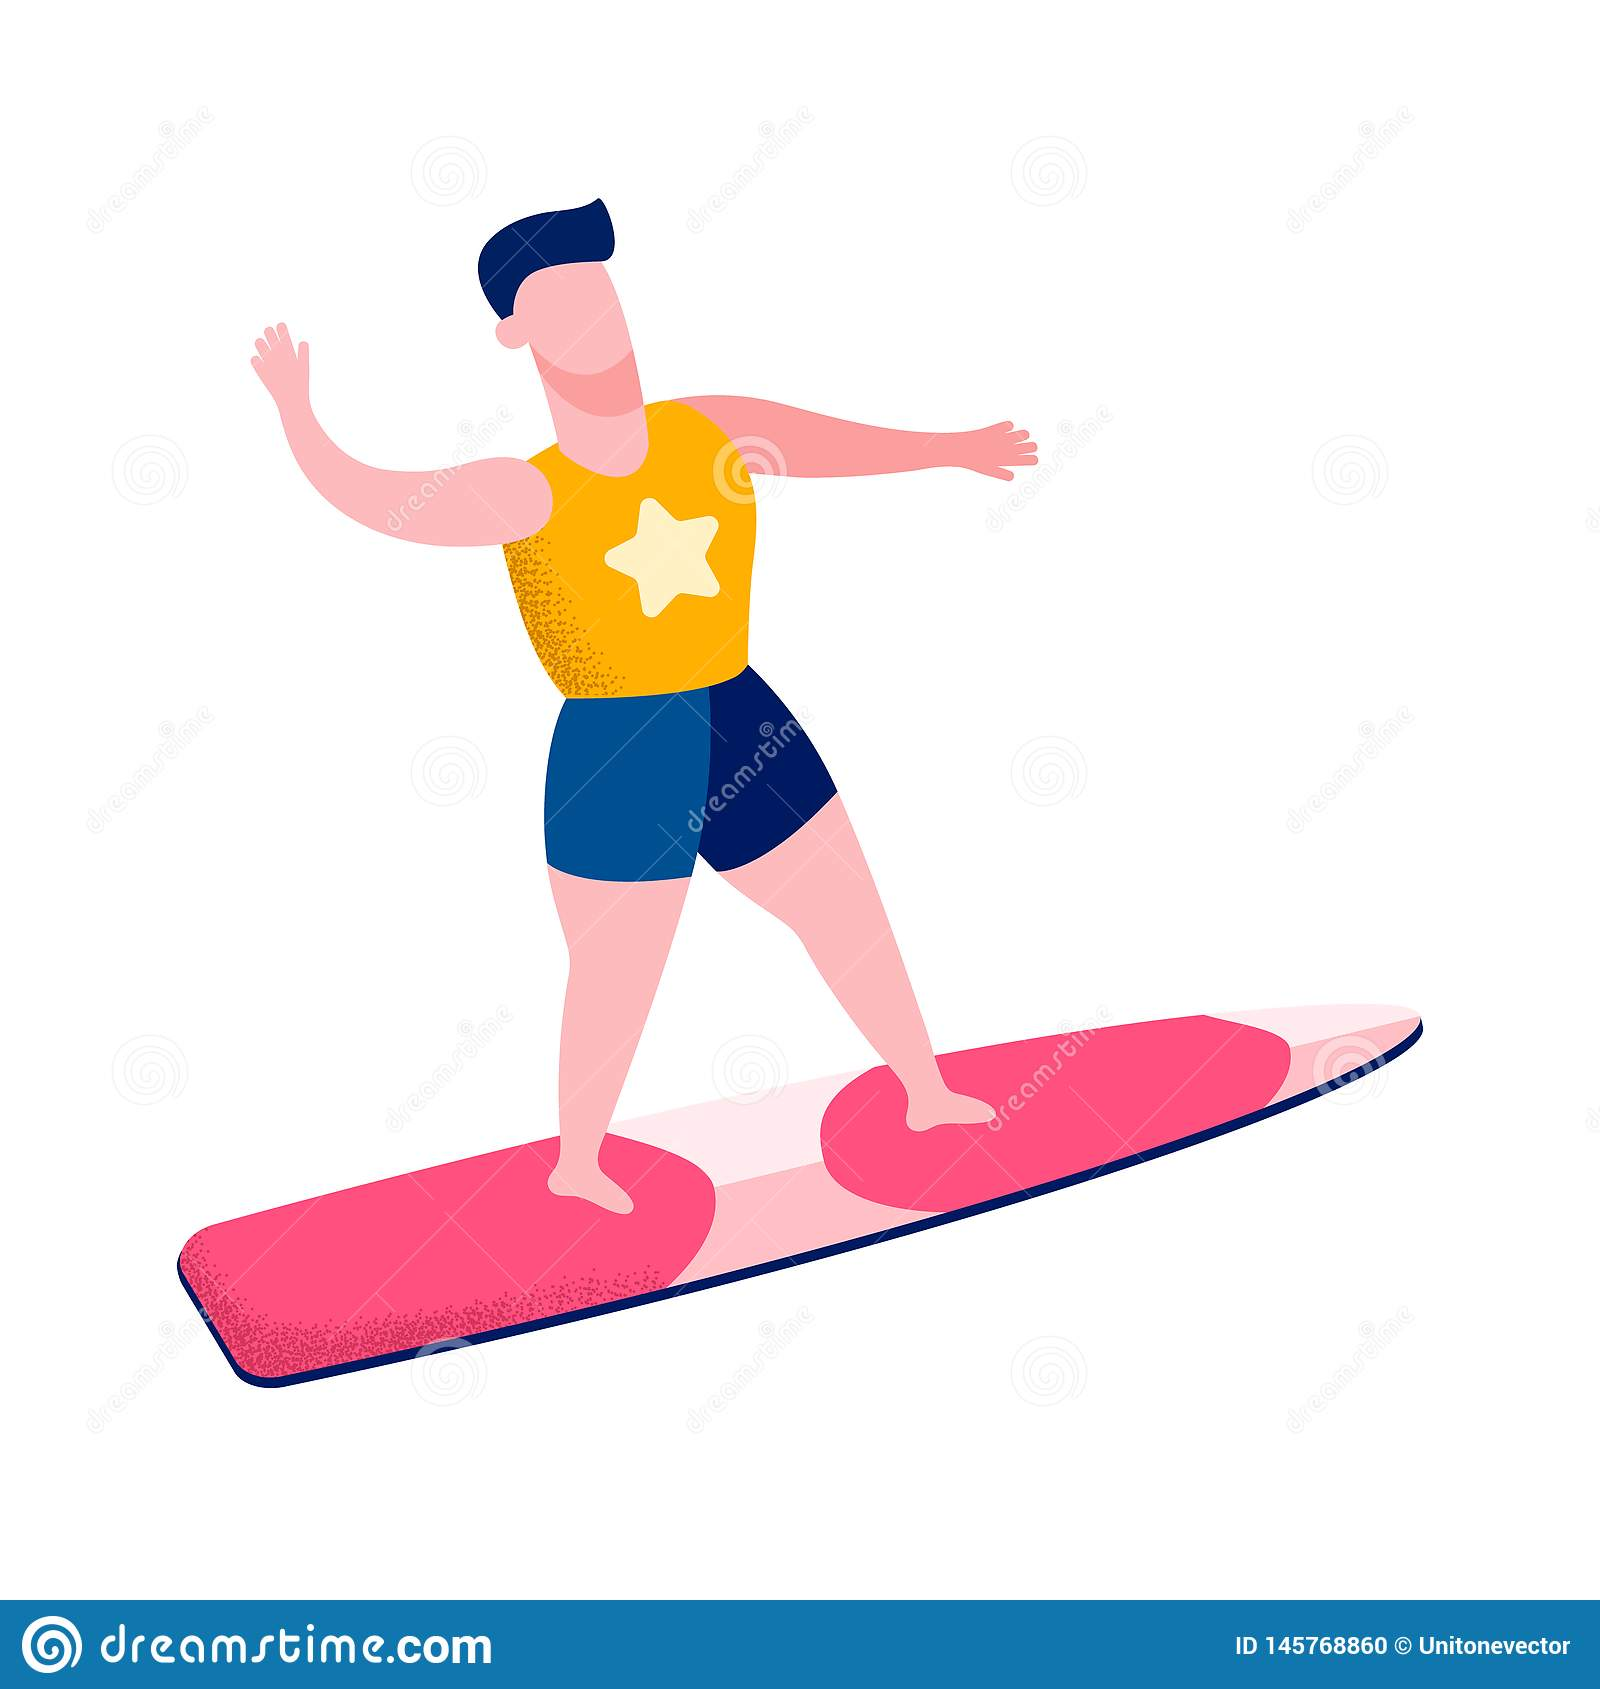 Watersport Stock Illustrations, Cliparts And Royalty Free Watersport Vectors